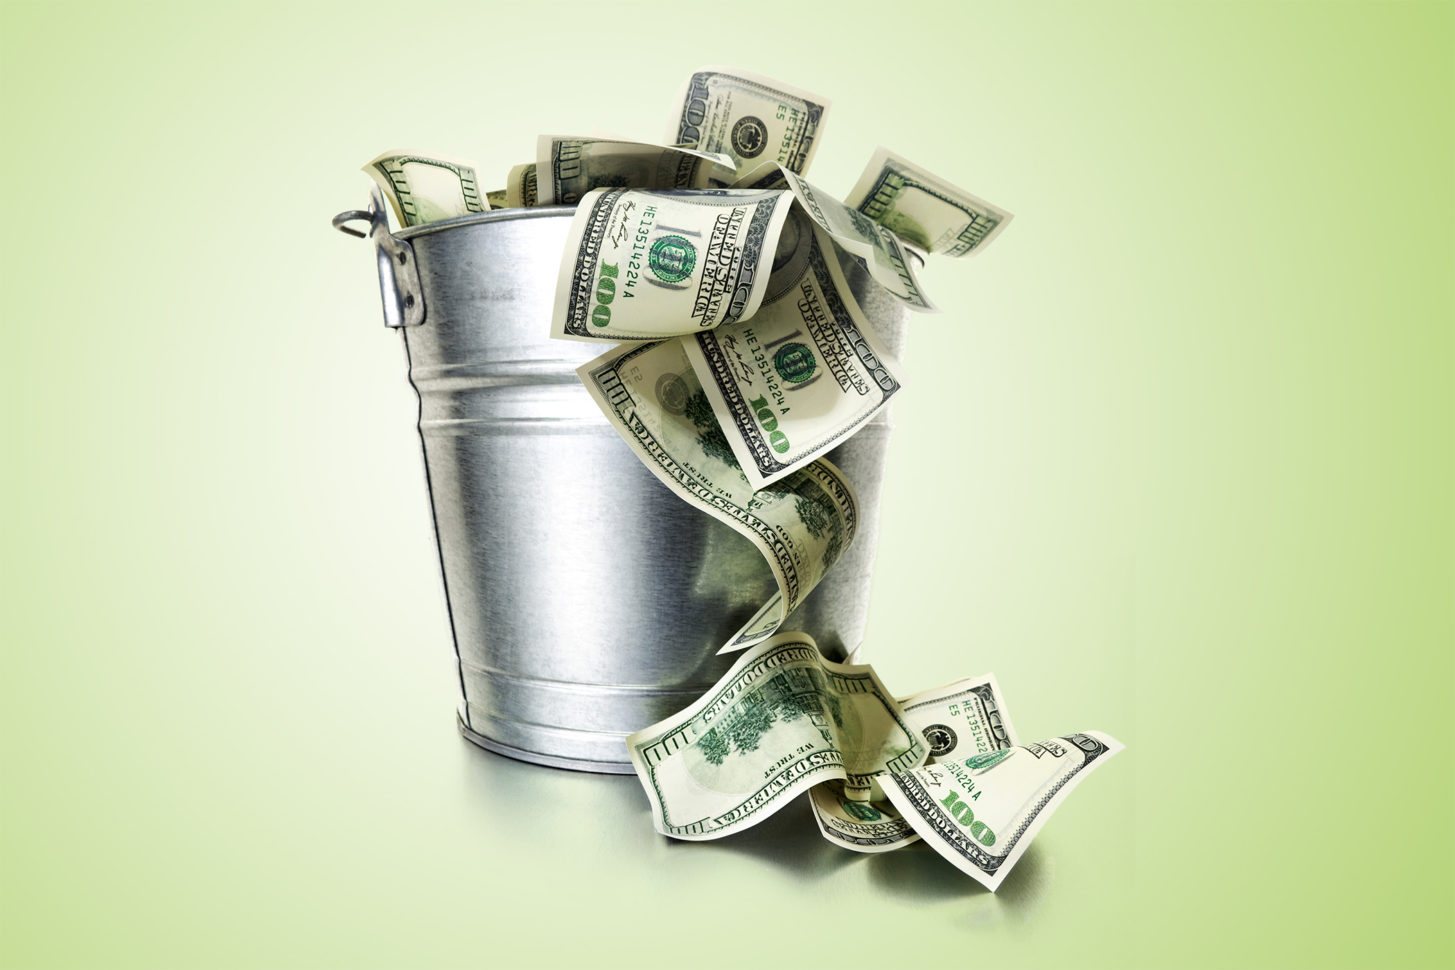 Buckets Of Money Spreadsheet For Retirement Income: Here's How To Use The Bucket Approach  Money